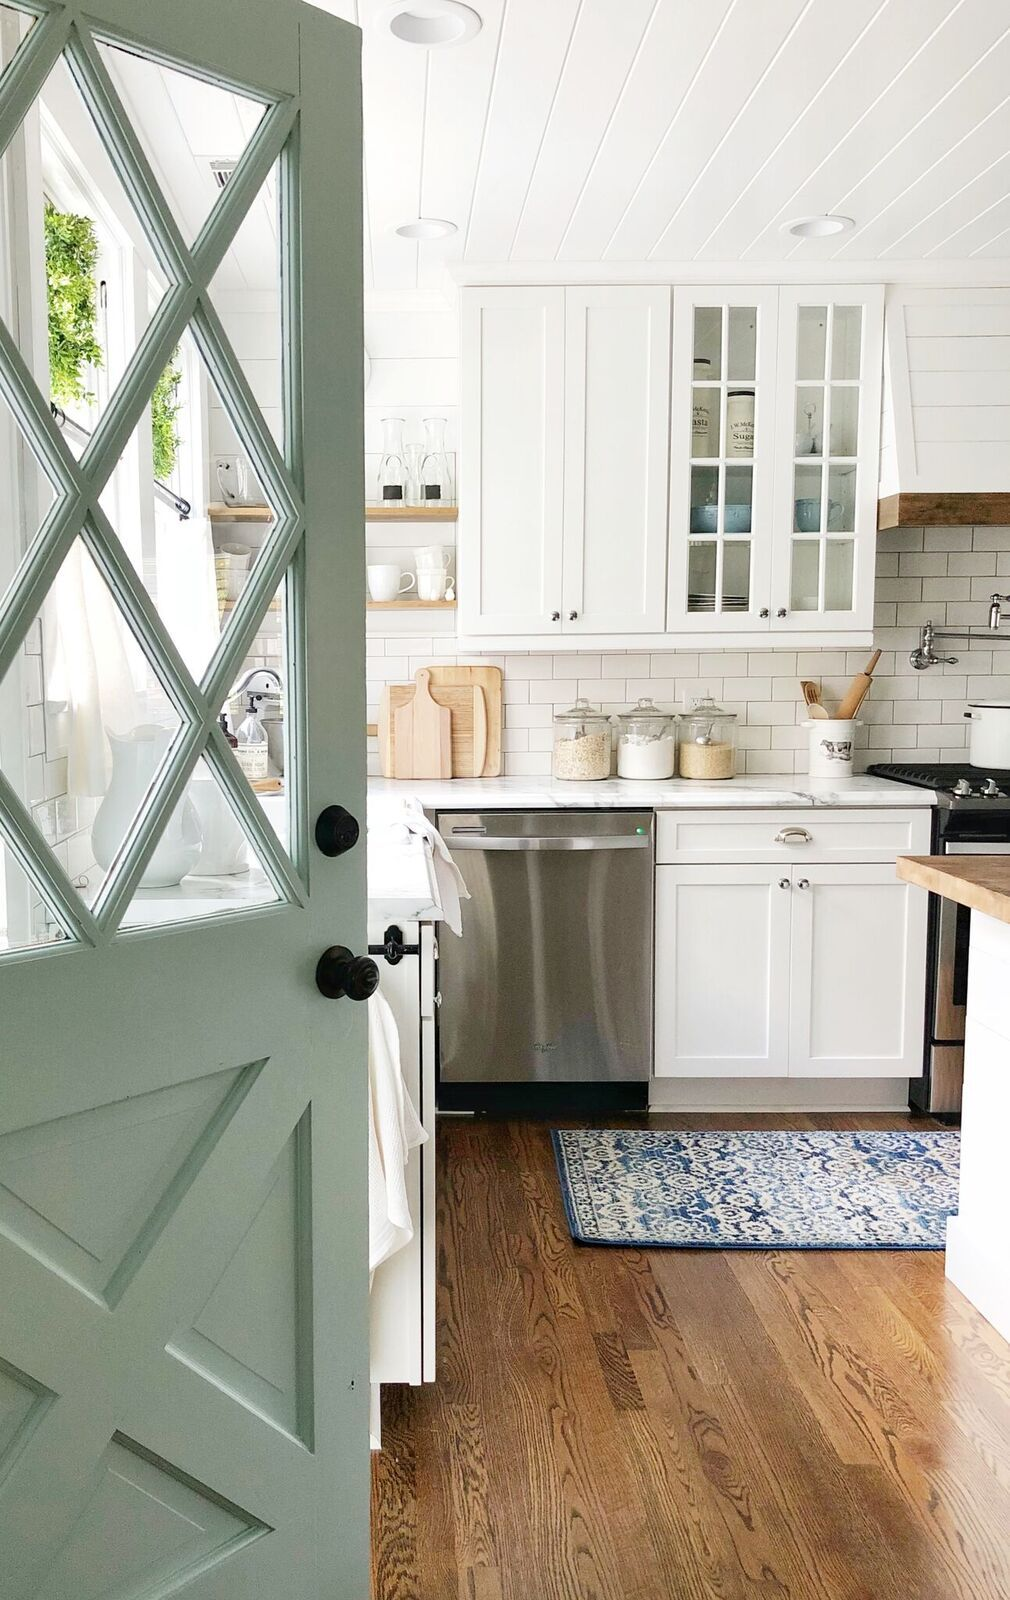 Kitchen With Robin S Egg Blue Door Paint Color House Tour And Paint Color On Home Bunch Blog Interior Hjem Huse